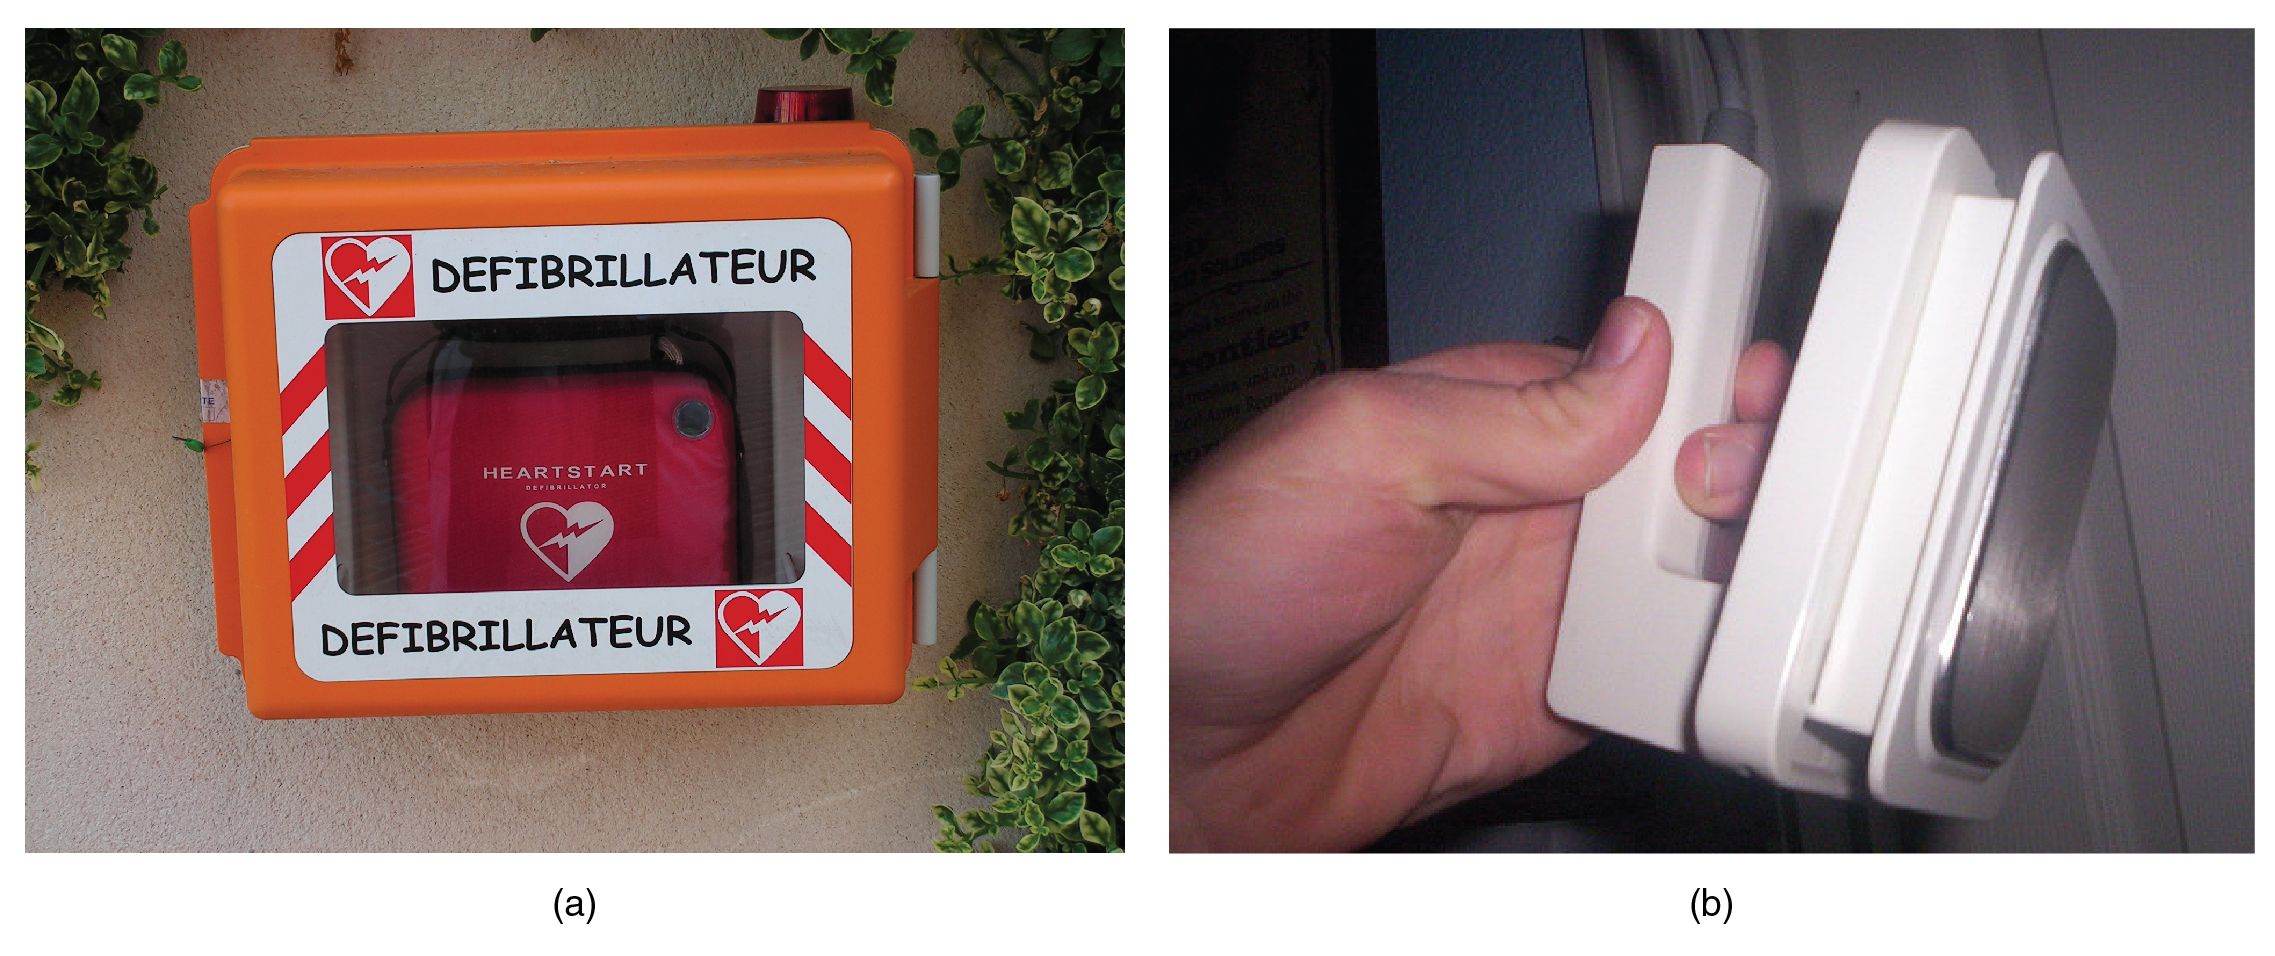 In this figure two photographs of defibrillators are shown.